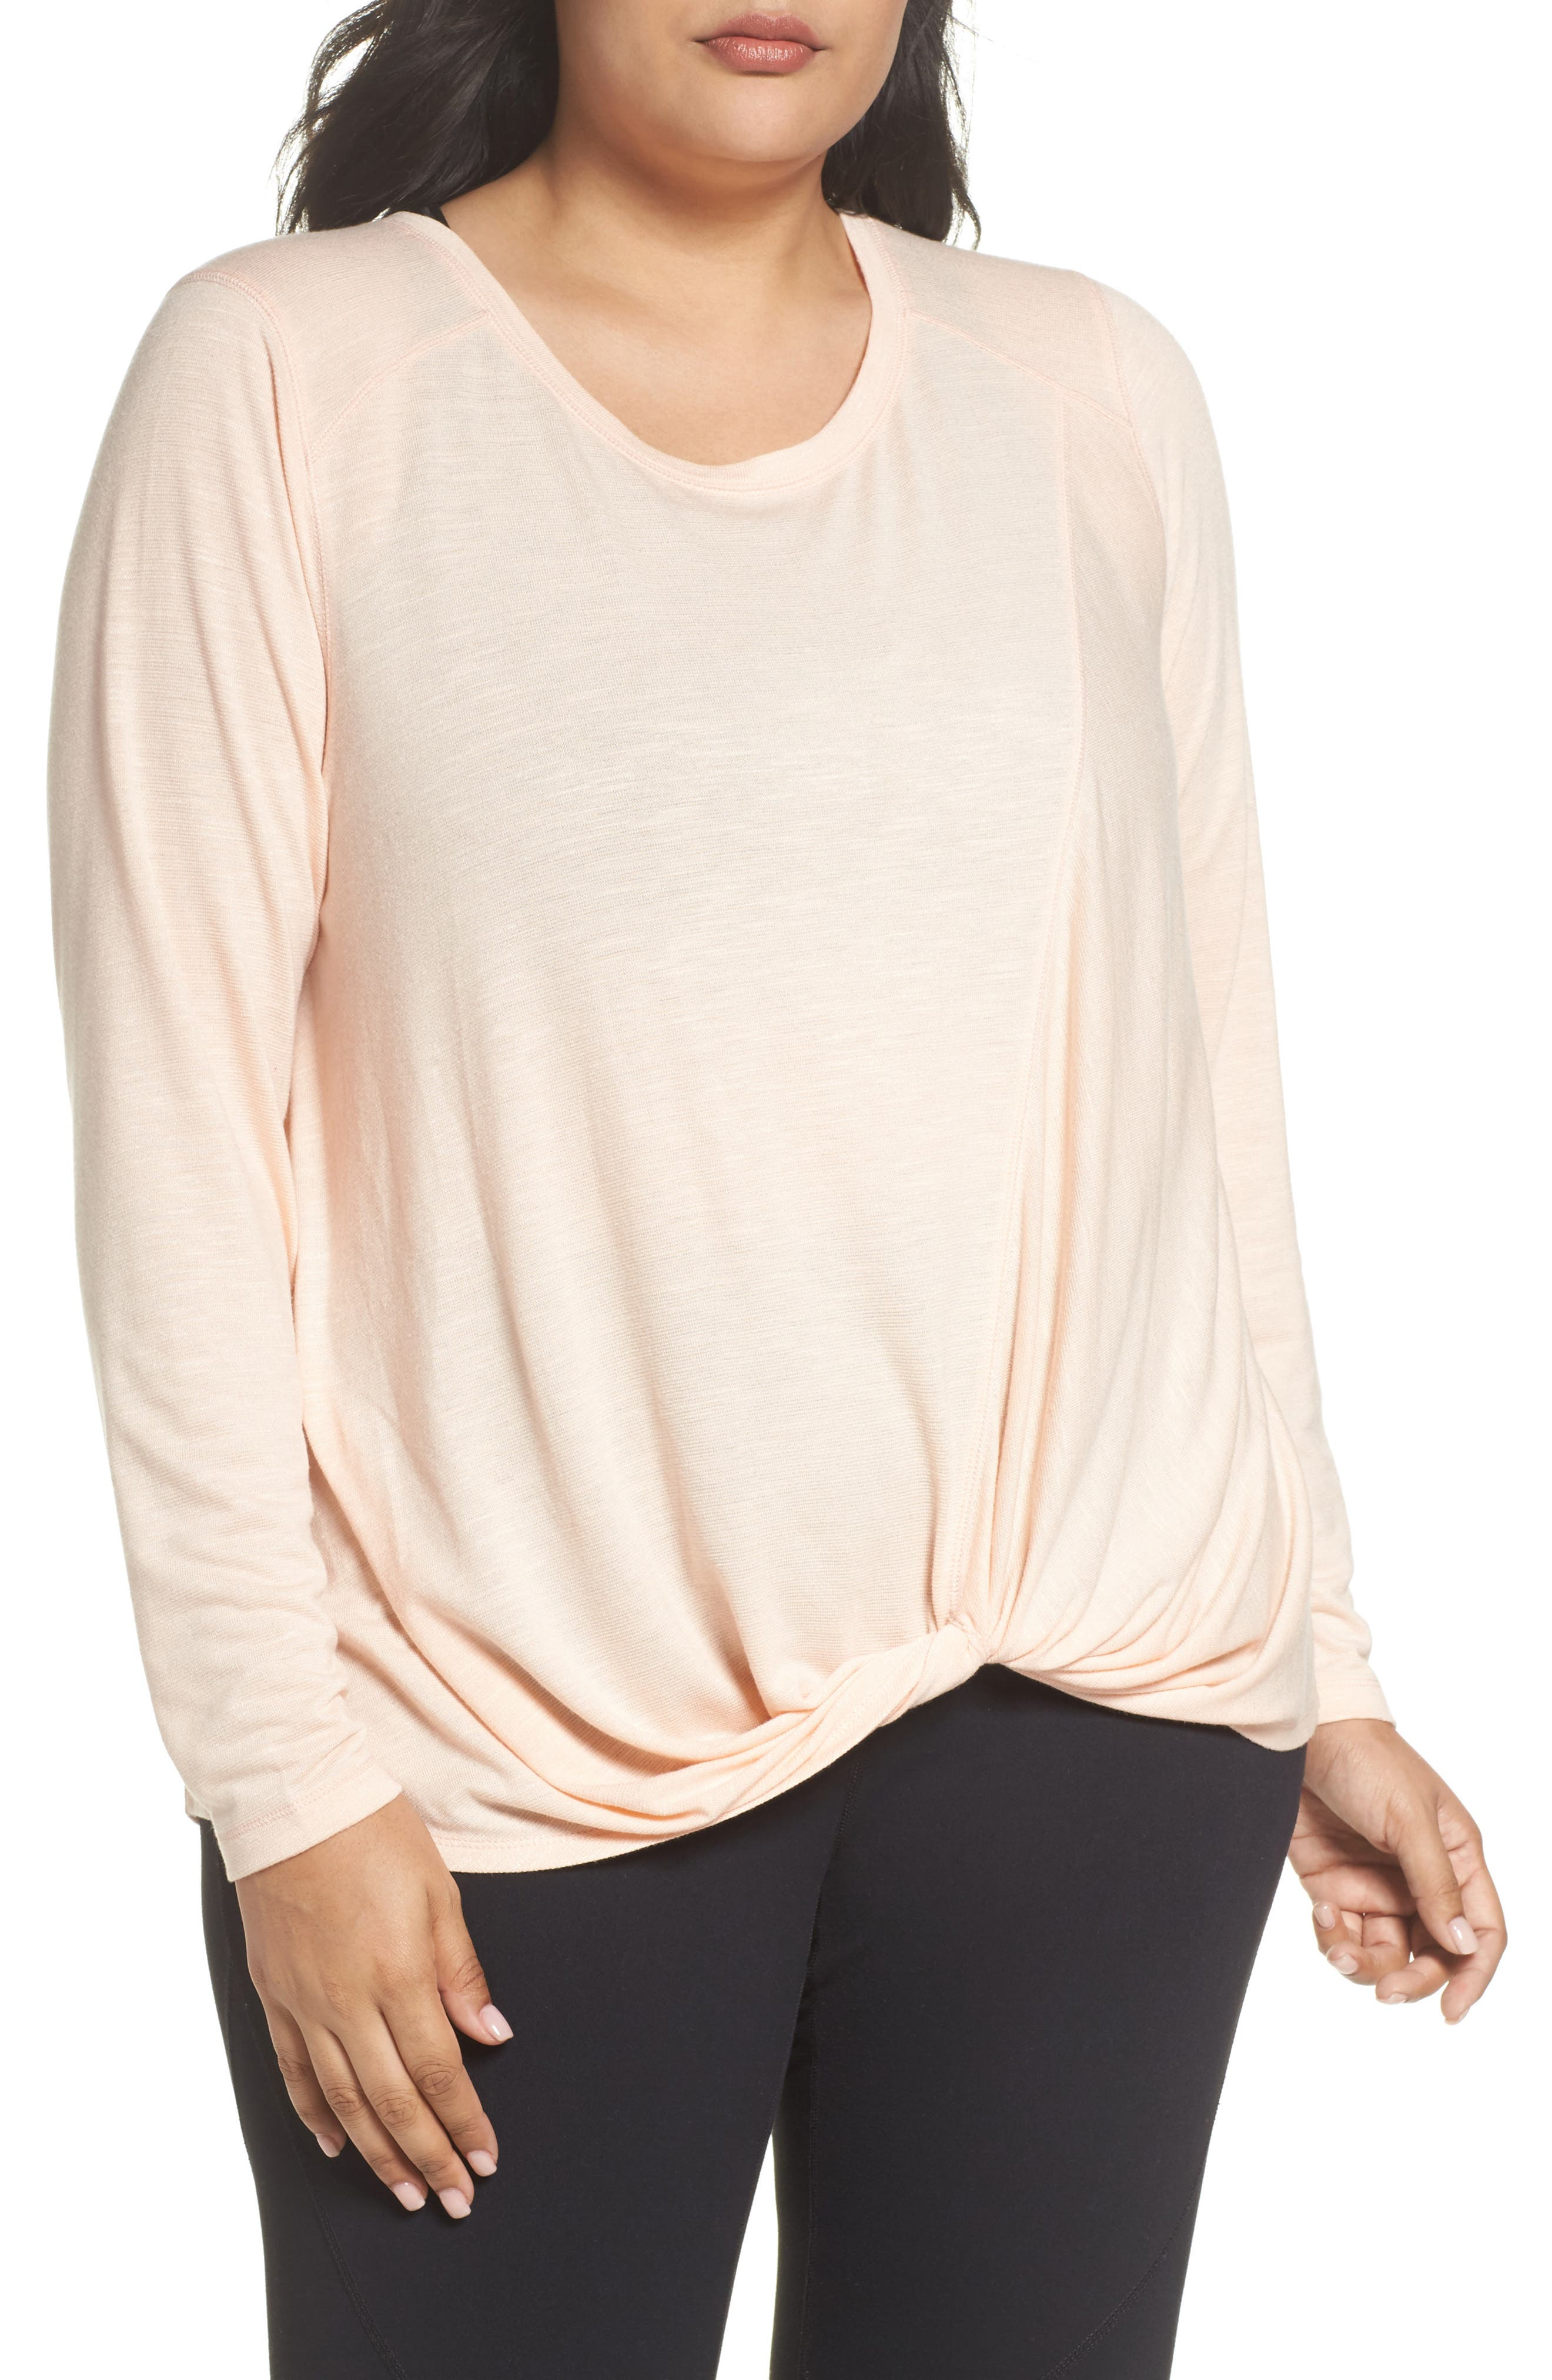 Zella 'Twisty Turn' Long Sleeve Tee (Plus Size)